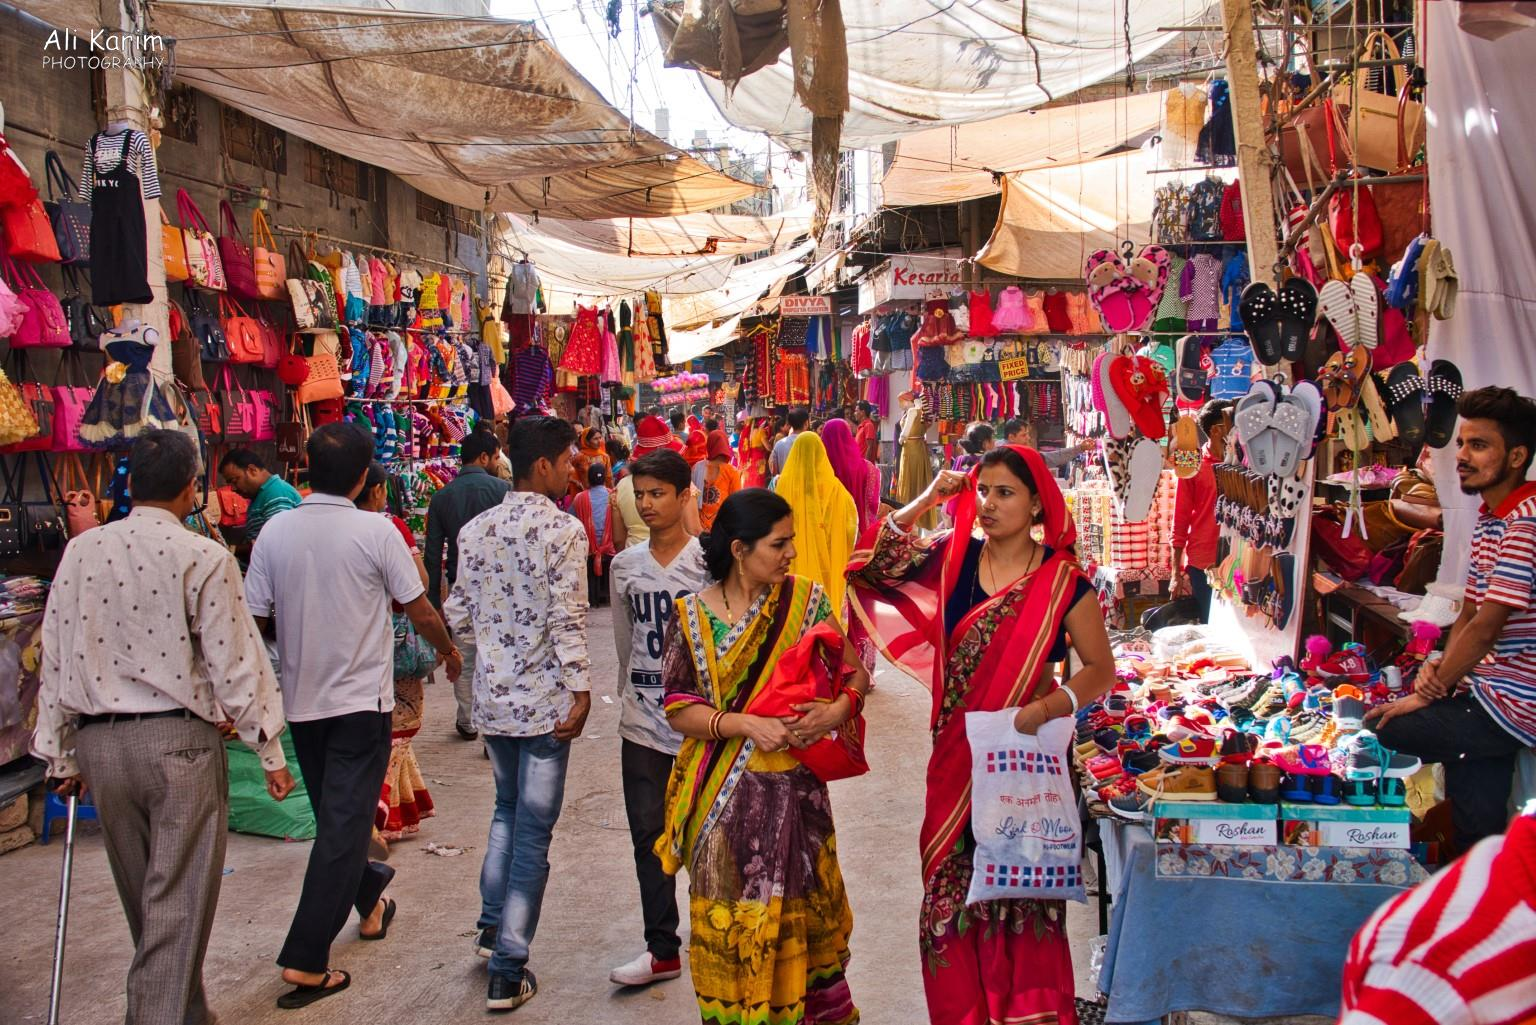 Bikaner, Rajasthan Very busy Bazaar just inside the walls of the old city; we went here several times to shop for wedding clothes